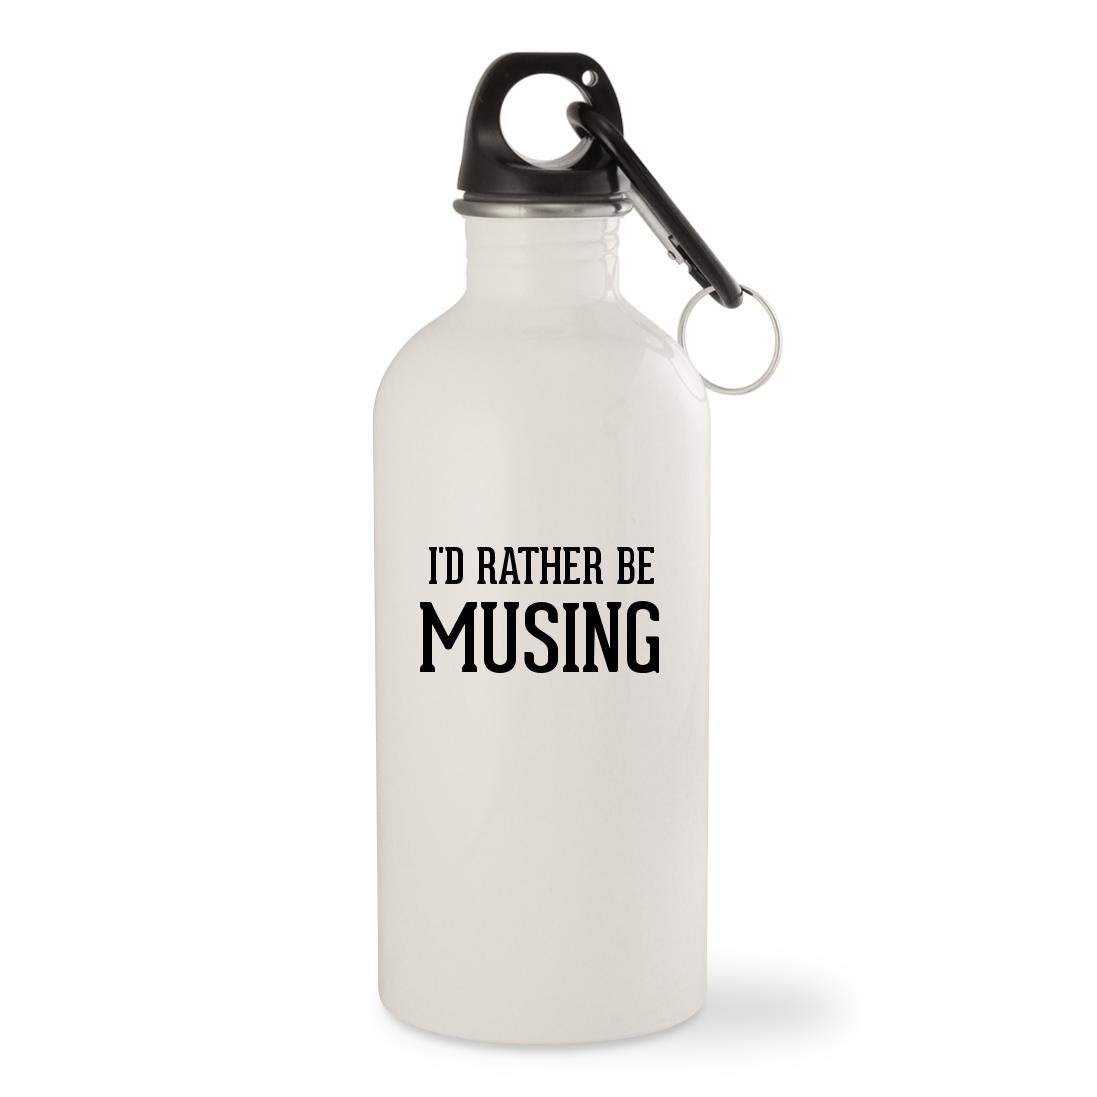 I'd Rather Be MUSING - White 20oz Stainless Steel Water Bottle with Carabiner